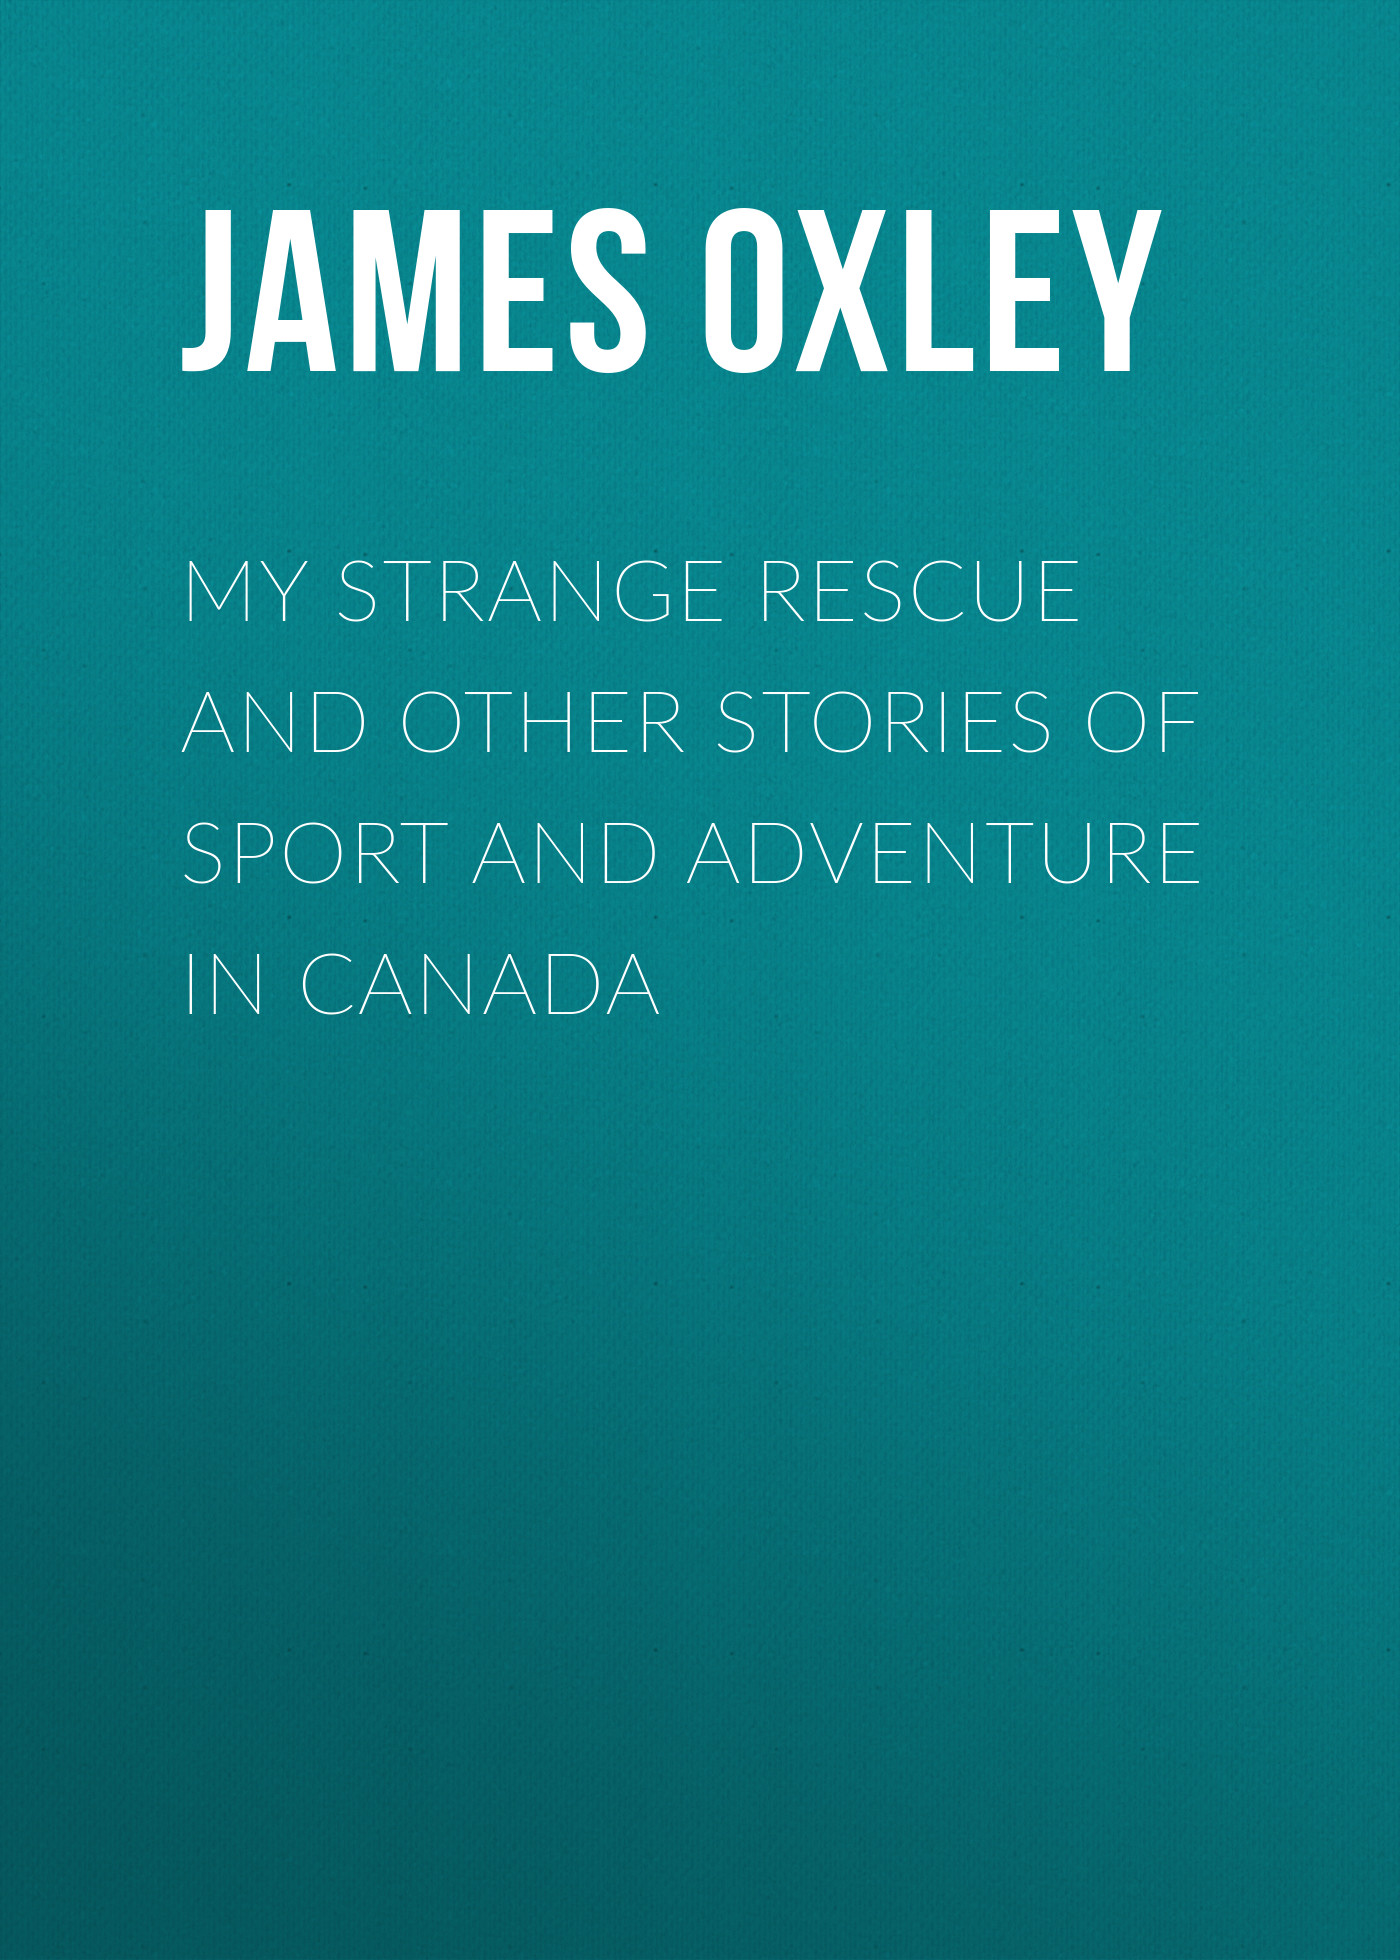 Oxley James Macdonald My Strange Rescue and other stories of Sport and Adventure in Canada margaret atwood presents stories by canada s best new women writers